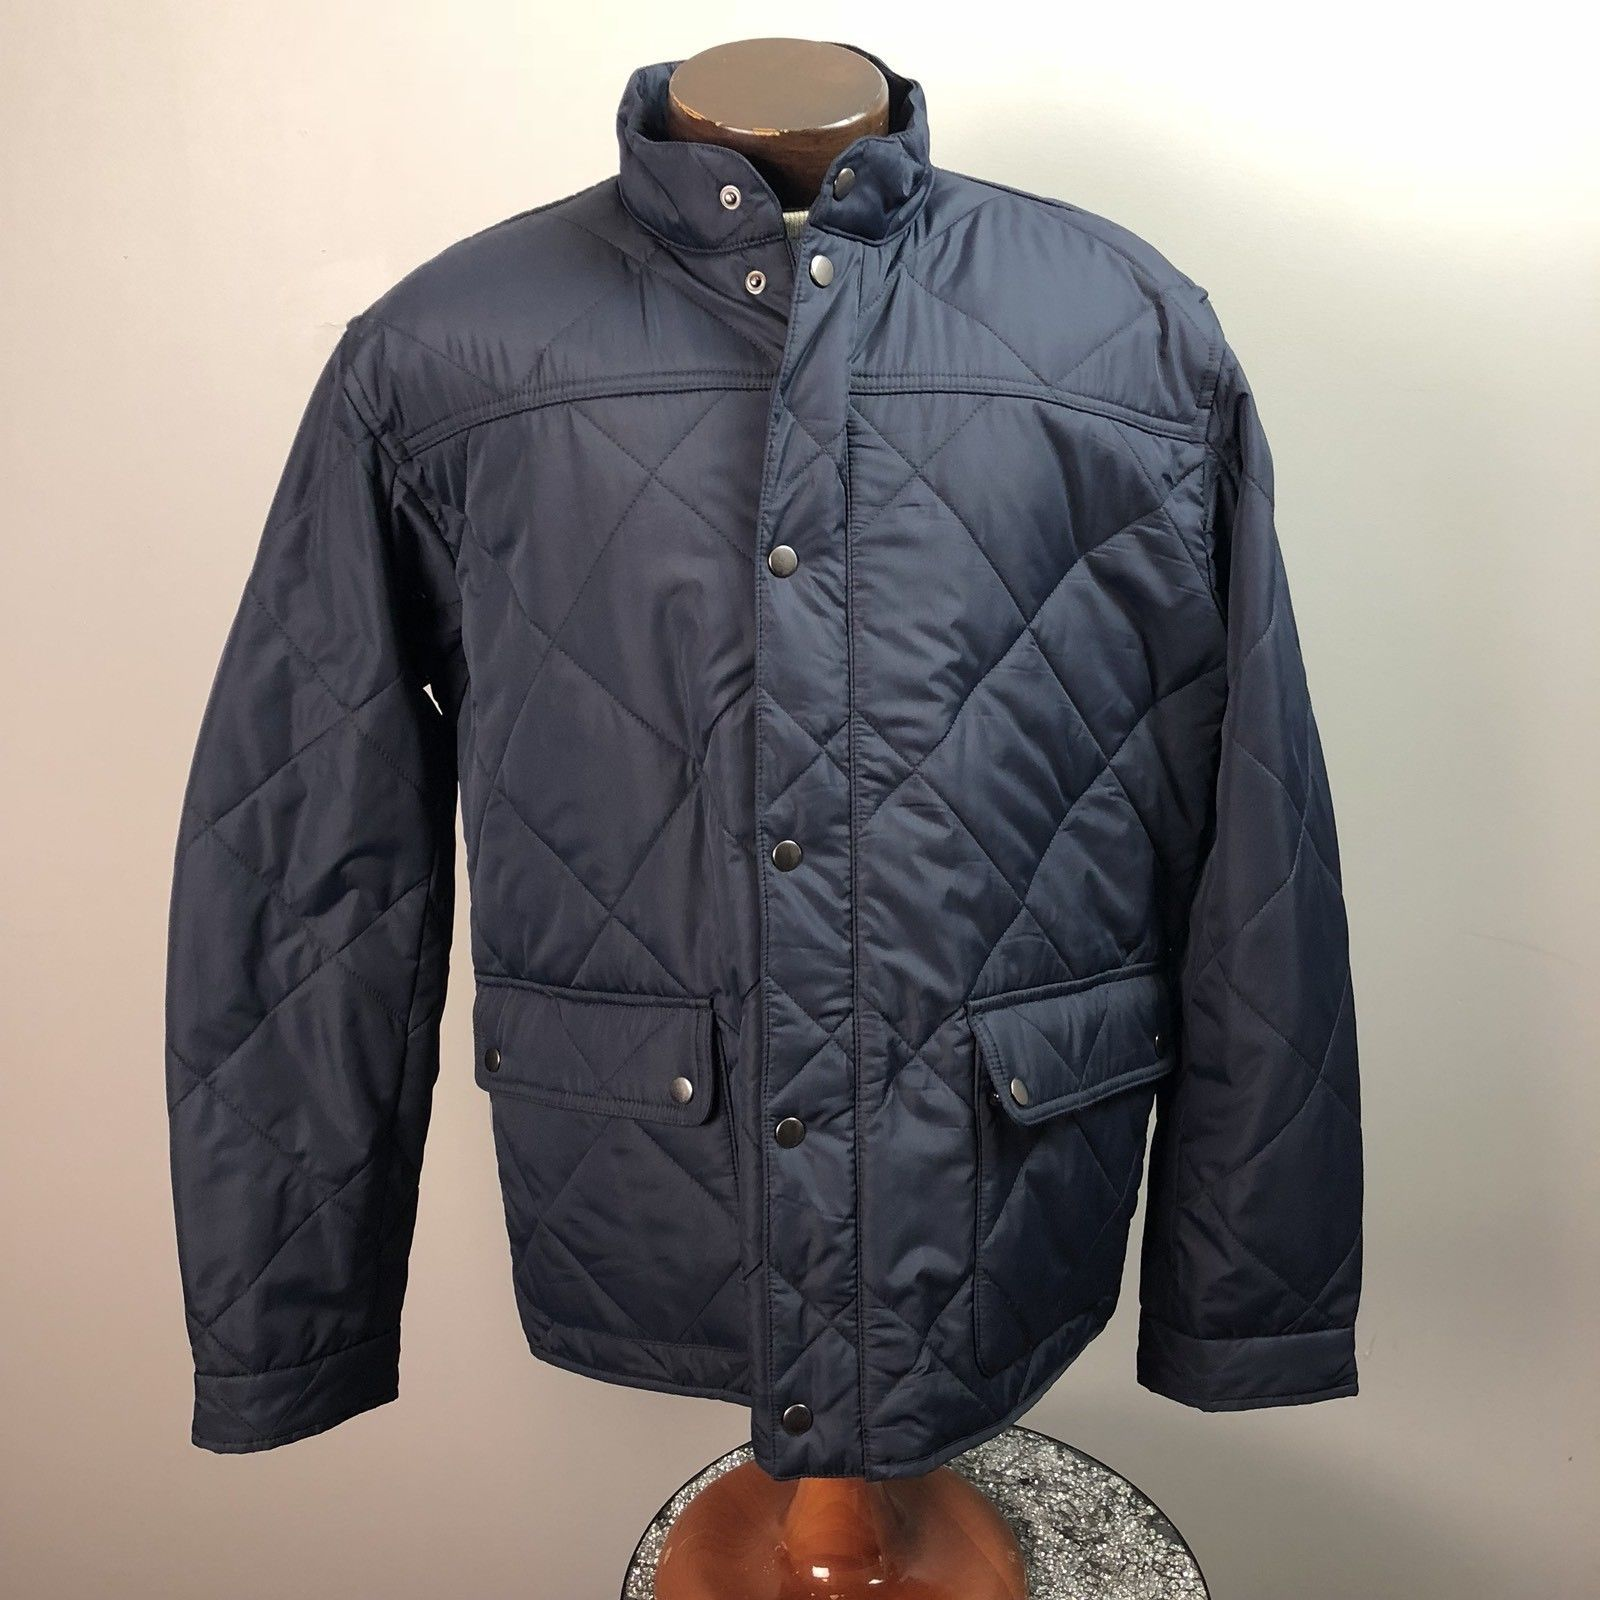 69 00 J Crew Coat Mens Blue Quilted Mid Length Size Xl Winter Coat  E2 9d A4 Crew Coat Mens Blue Quilted Length Size Winter Travel Week Warehouse